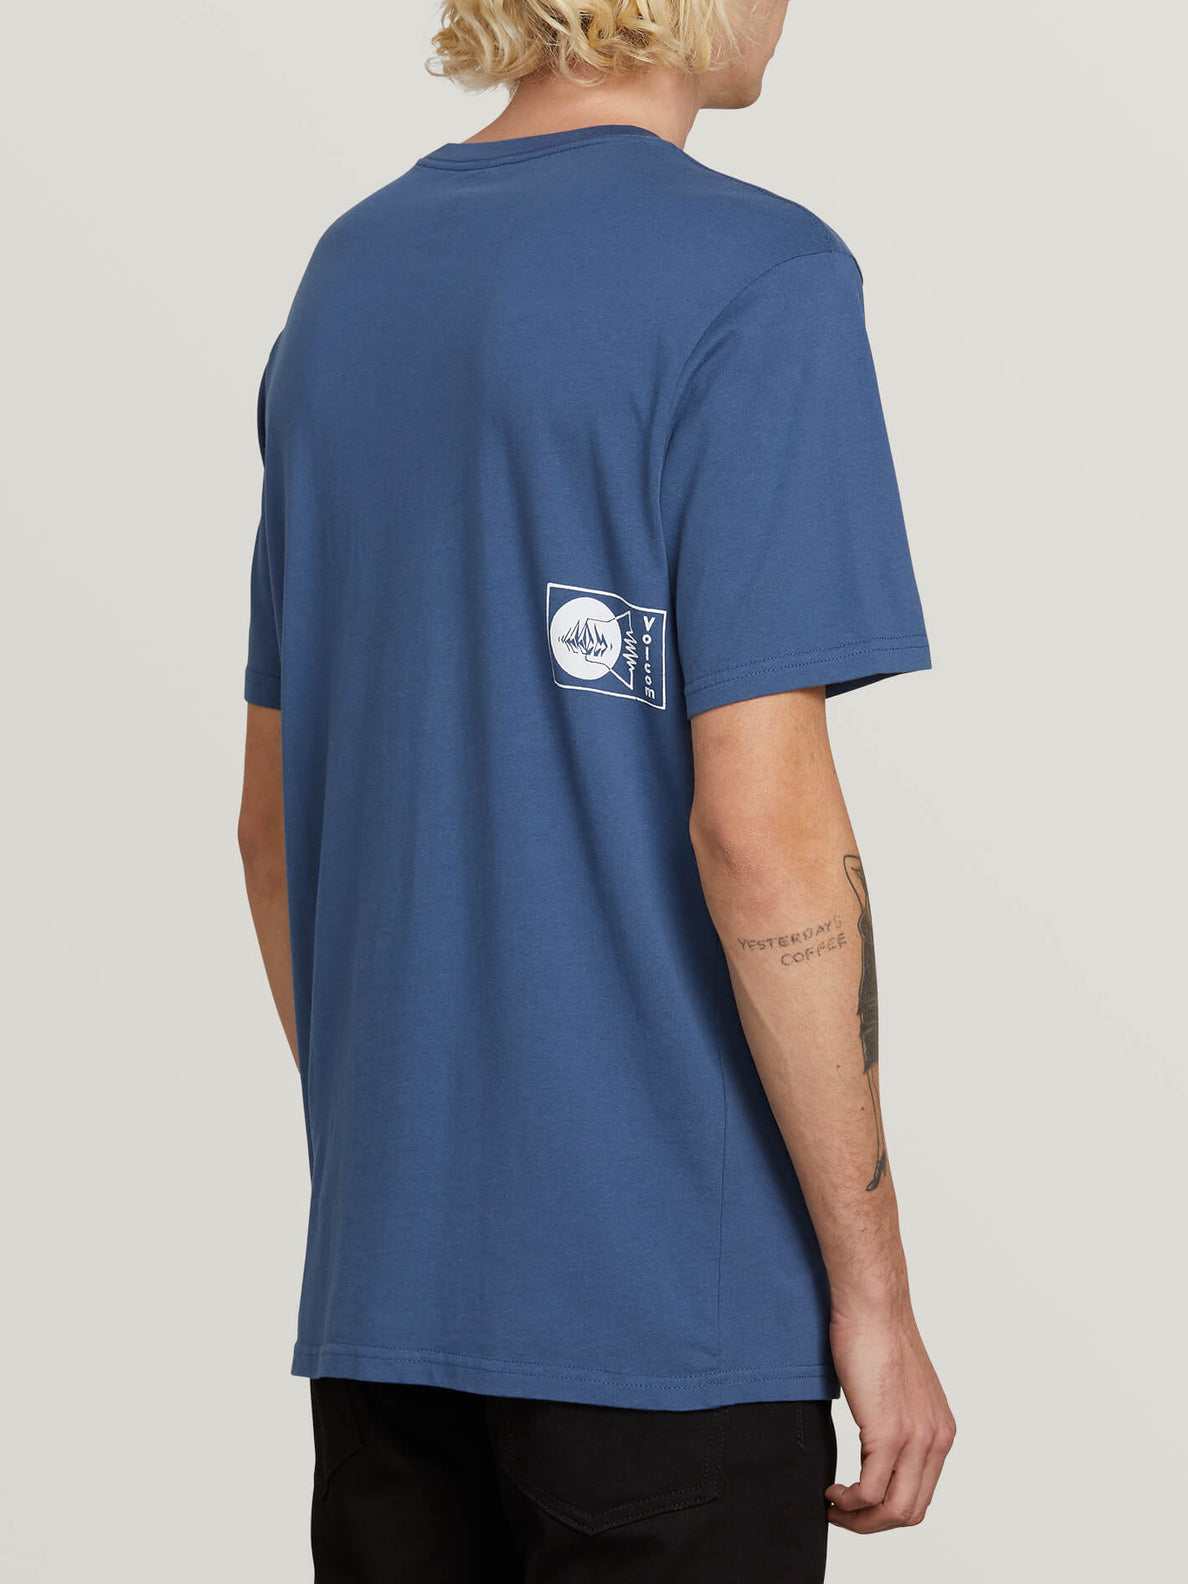 Audio Waves Short Sleeve Tee In Indigo, Alternate View